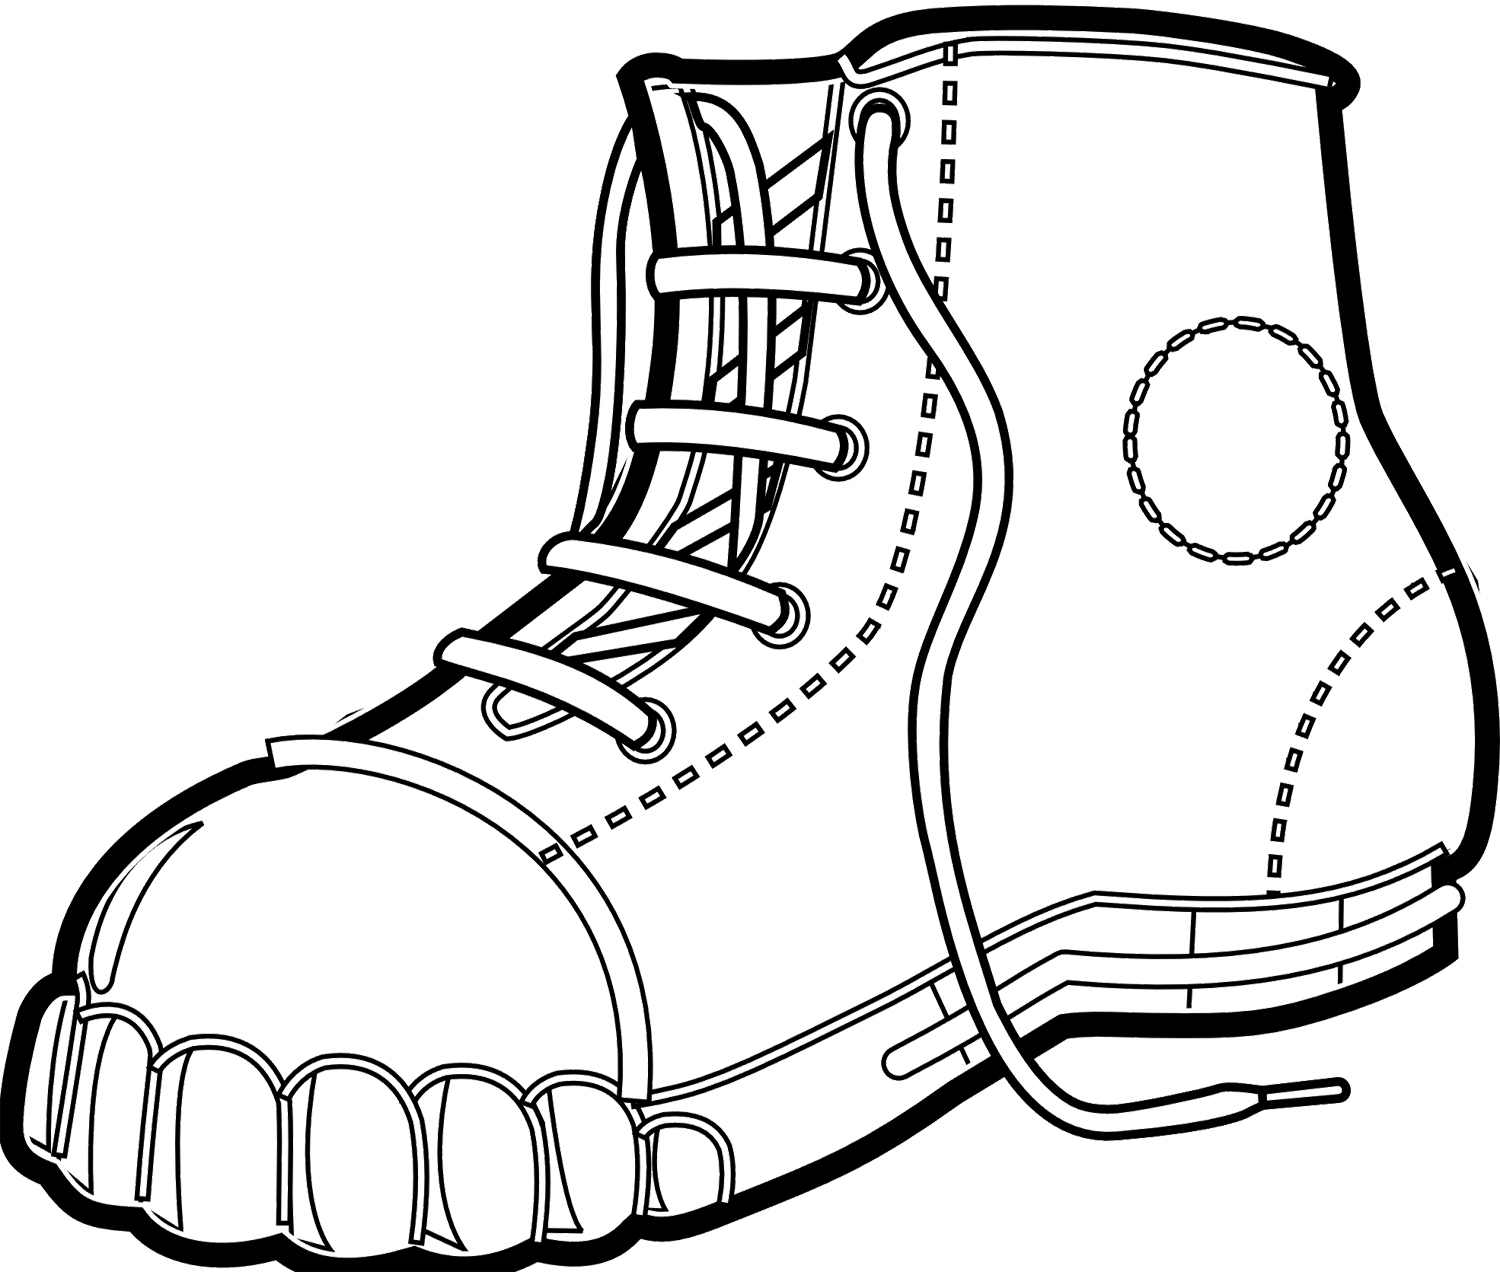 winter boots coloring pages - winter boots clipart clipart panda free clipart images